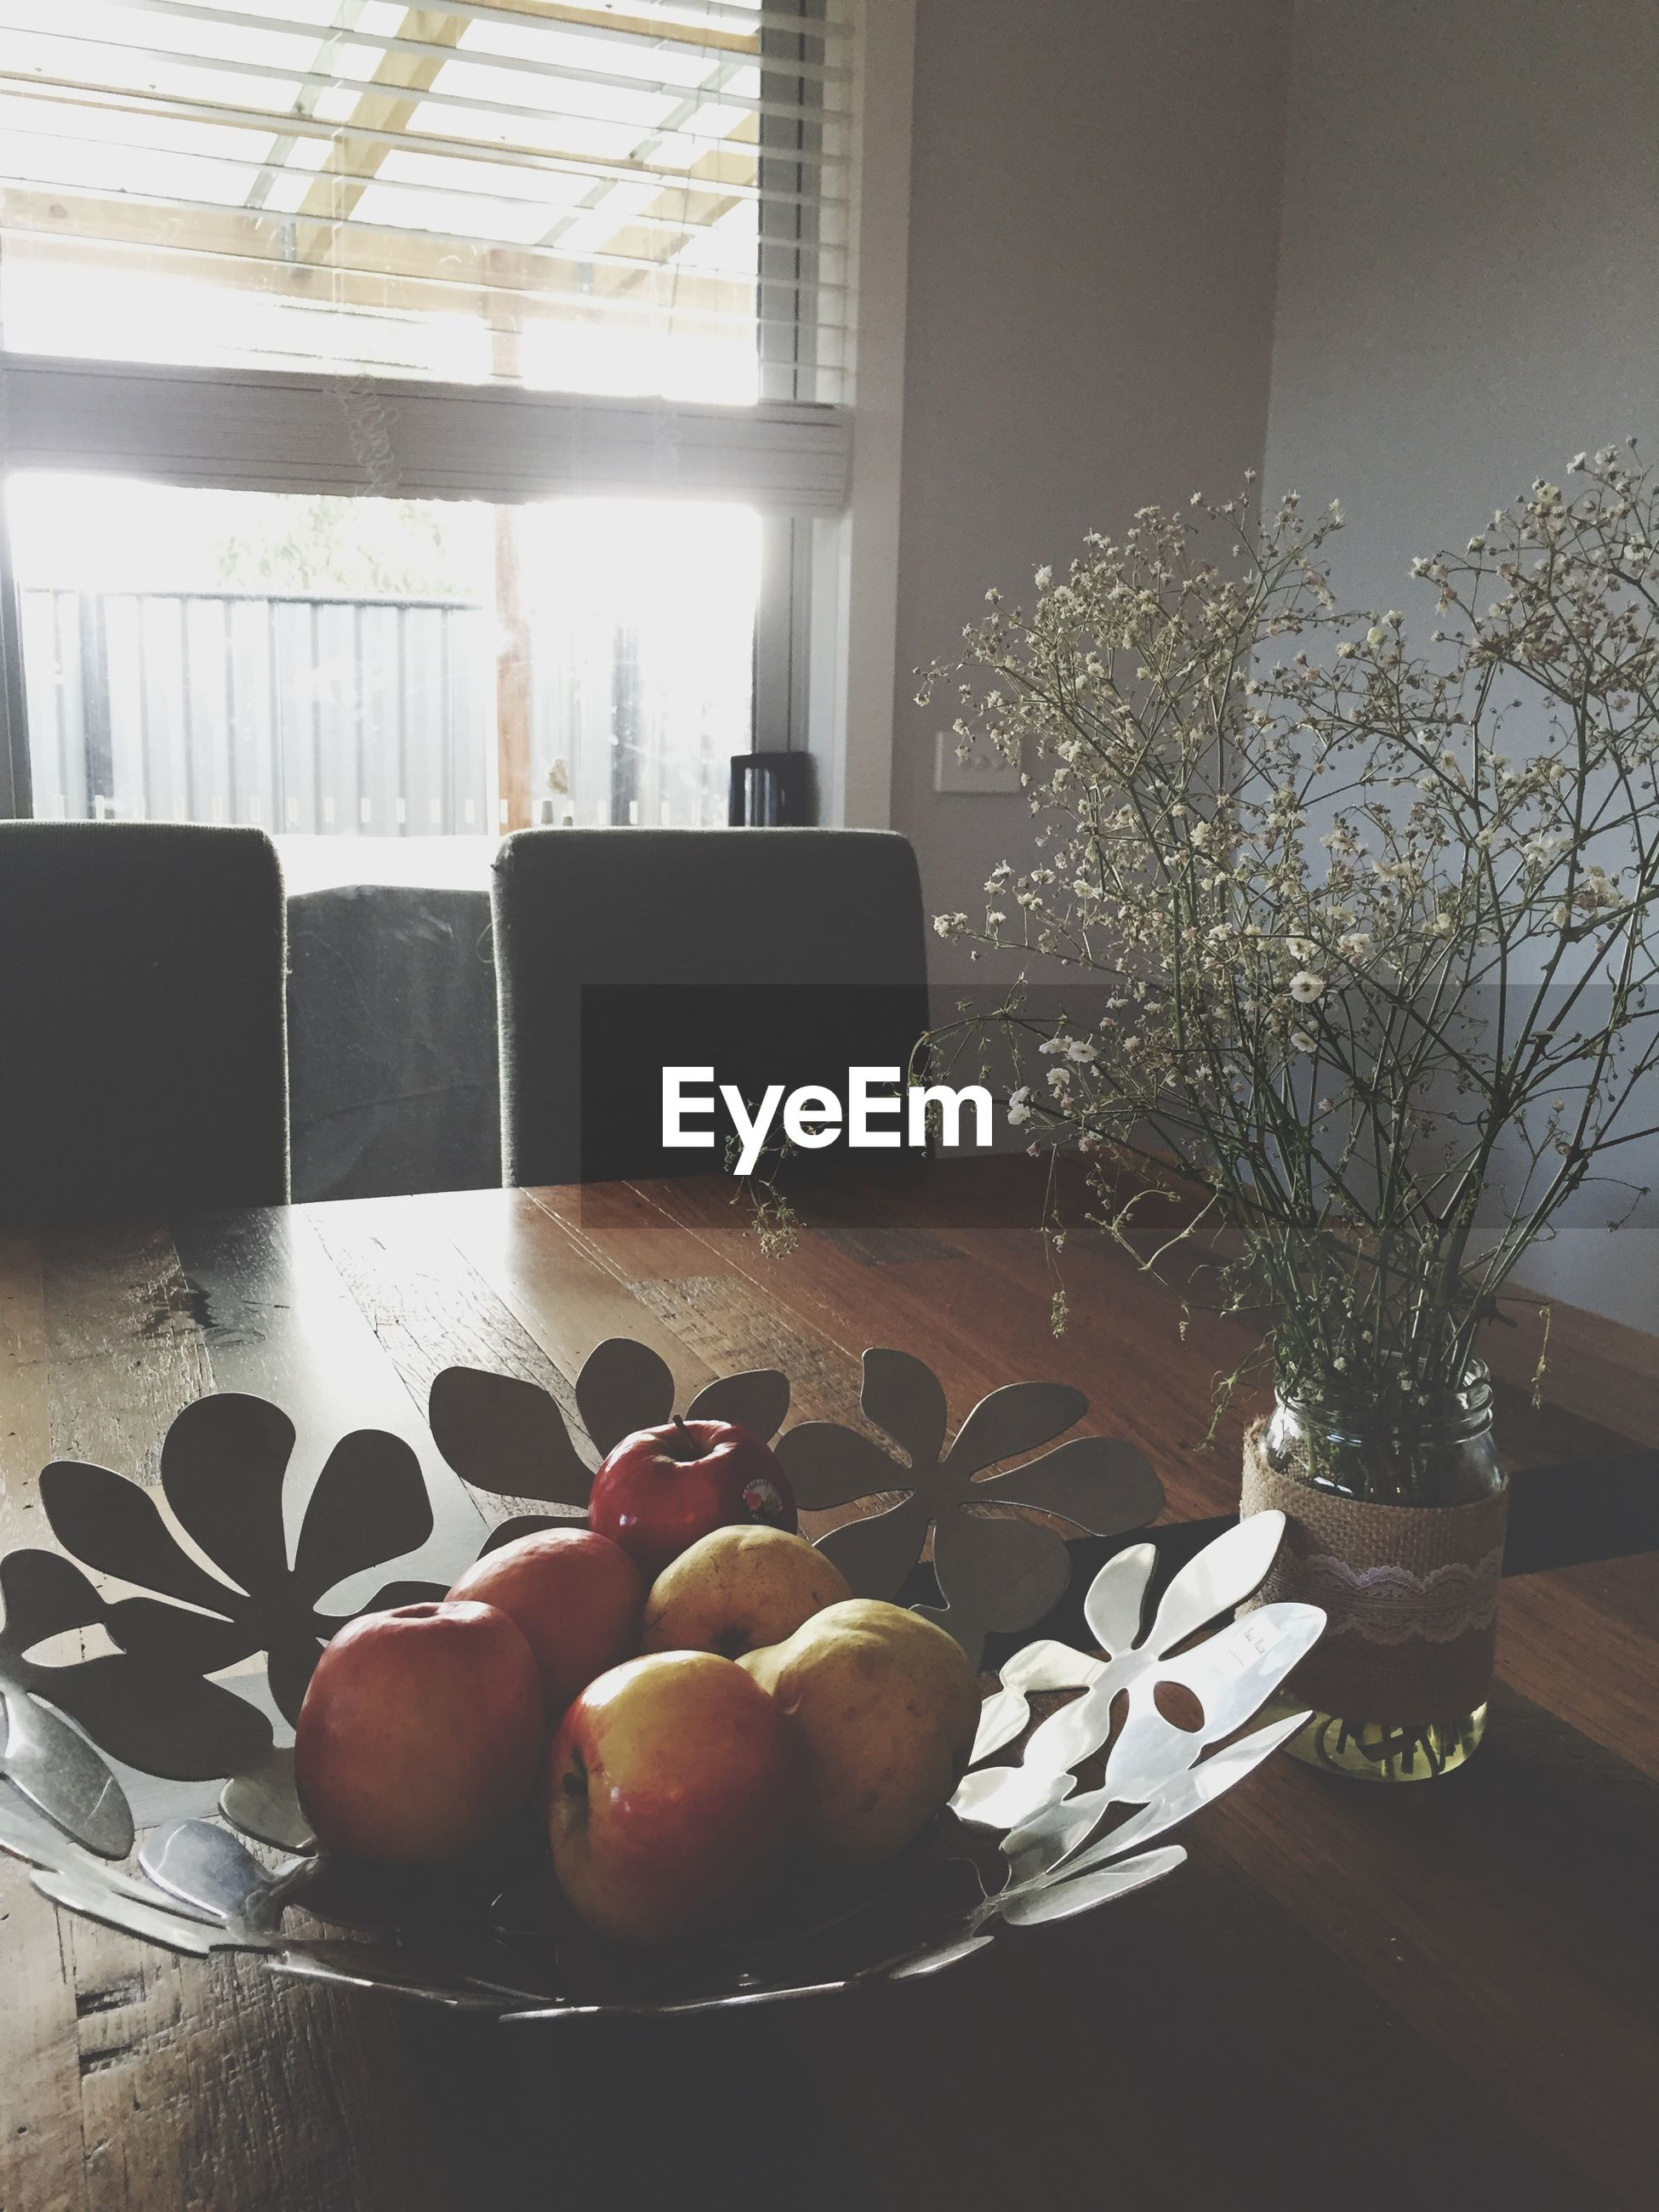 indoors, food and drink, table, freshness, food, still life, fruit, glass - material, home interior, healthy eating, decoration, no people, sweet food, window, architecture, basket, close-up, built structure, bowl, vase